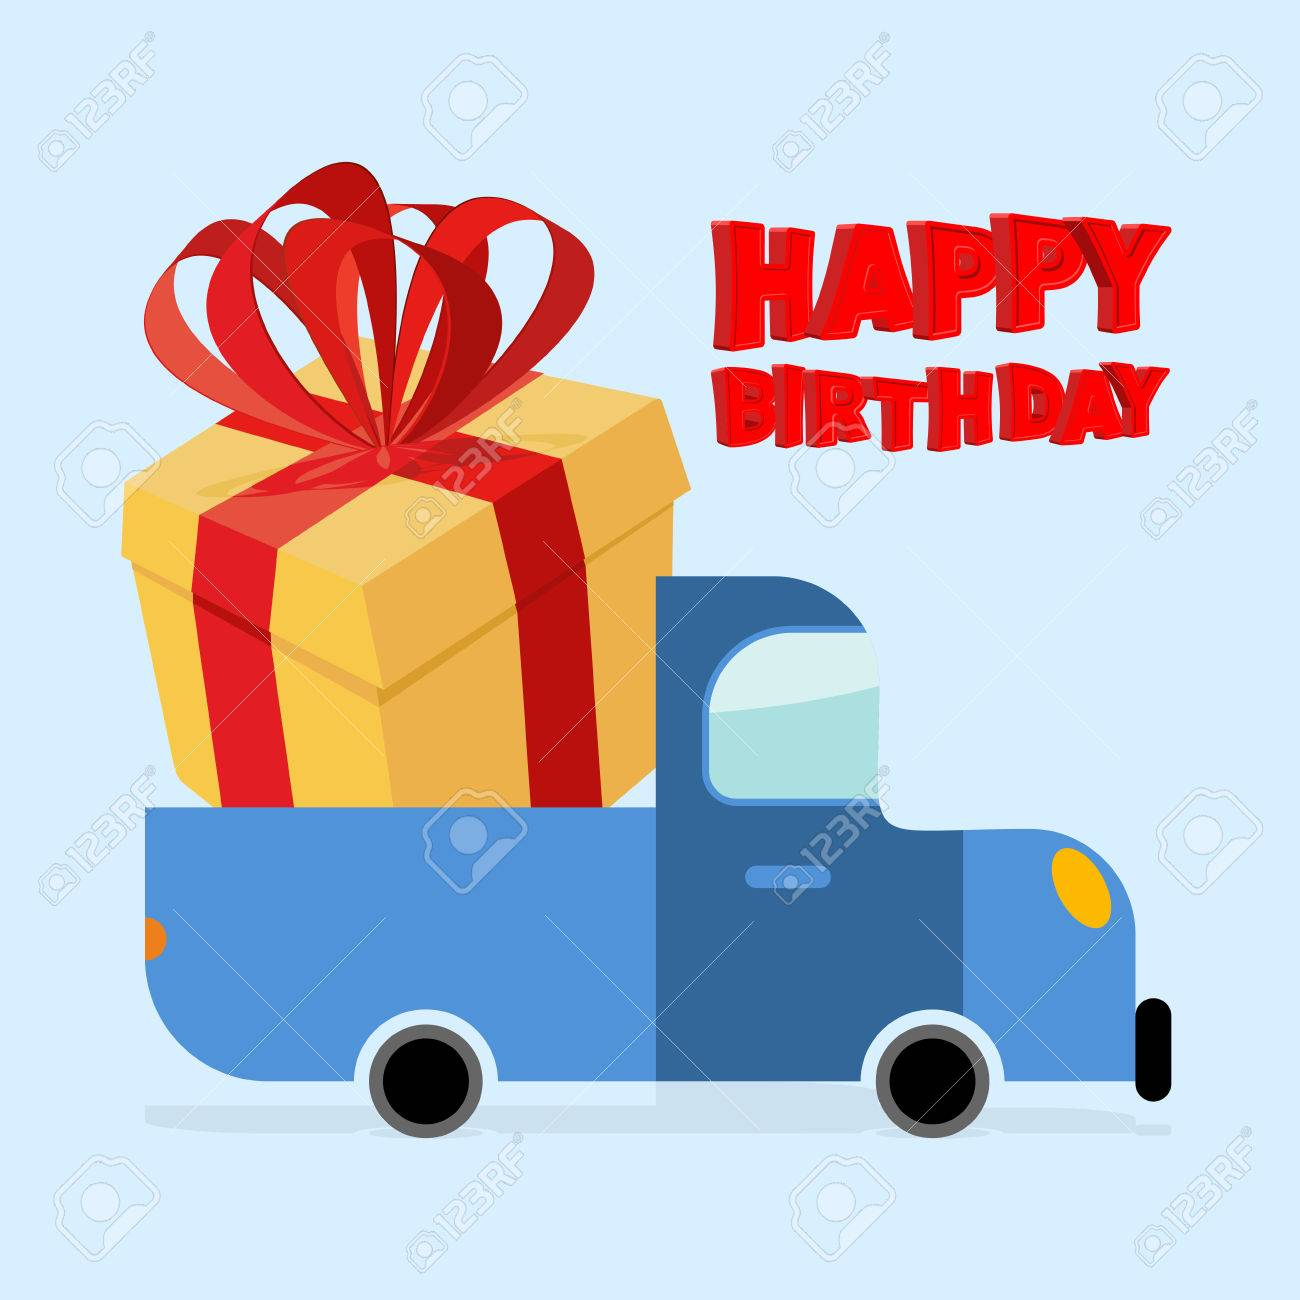 Happy Birthday Truck Carries Large Gift Box Yellow With Red Bow